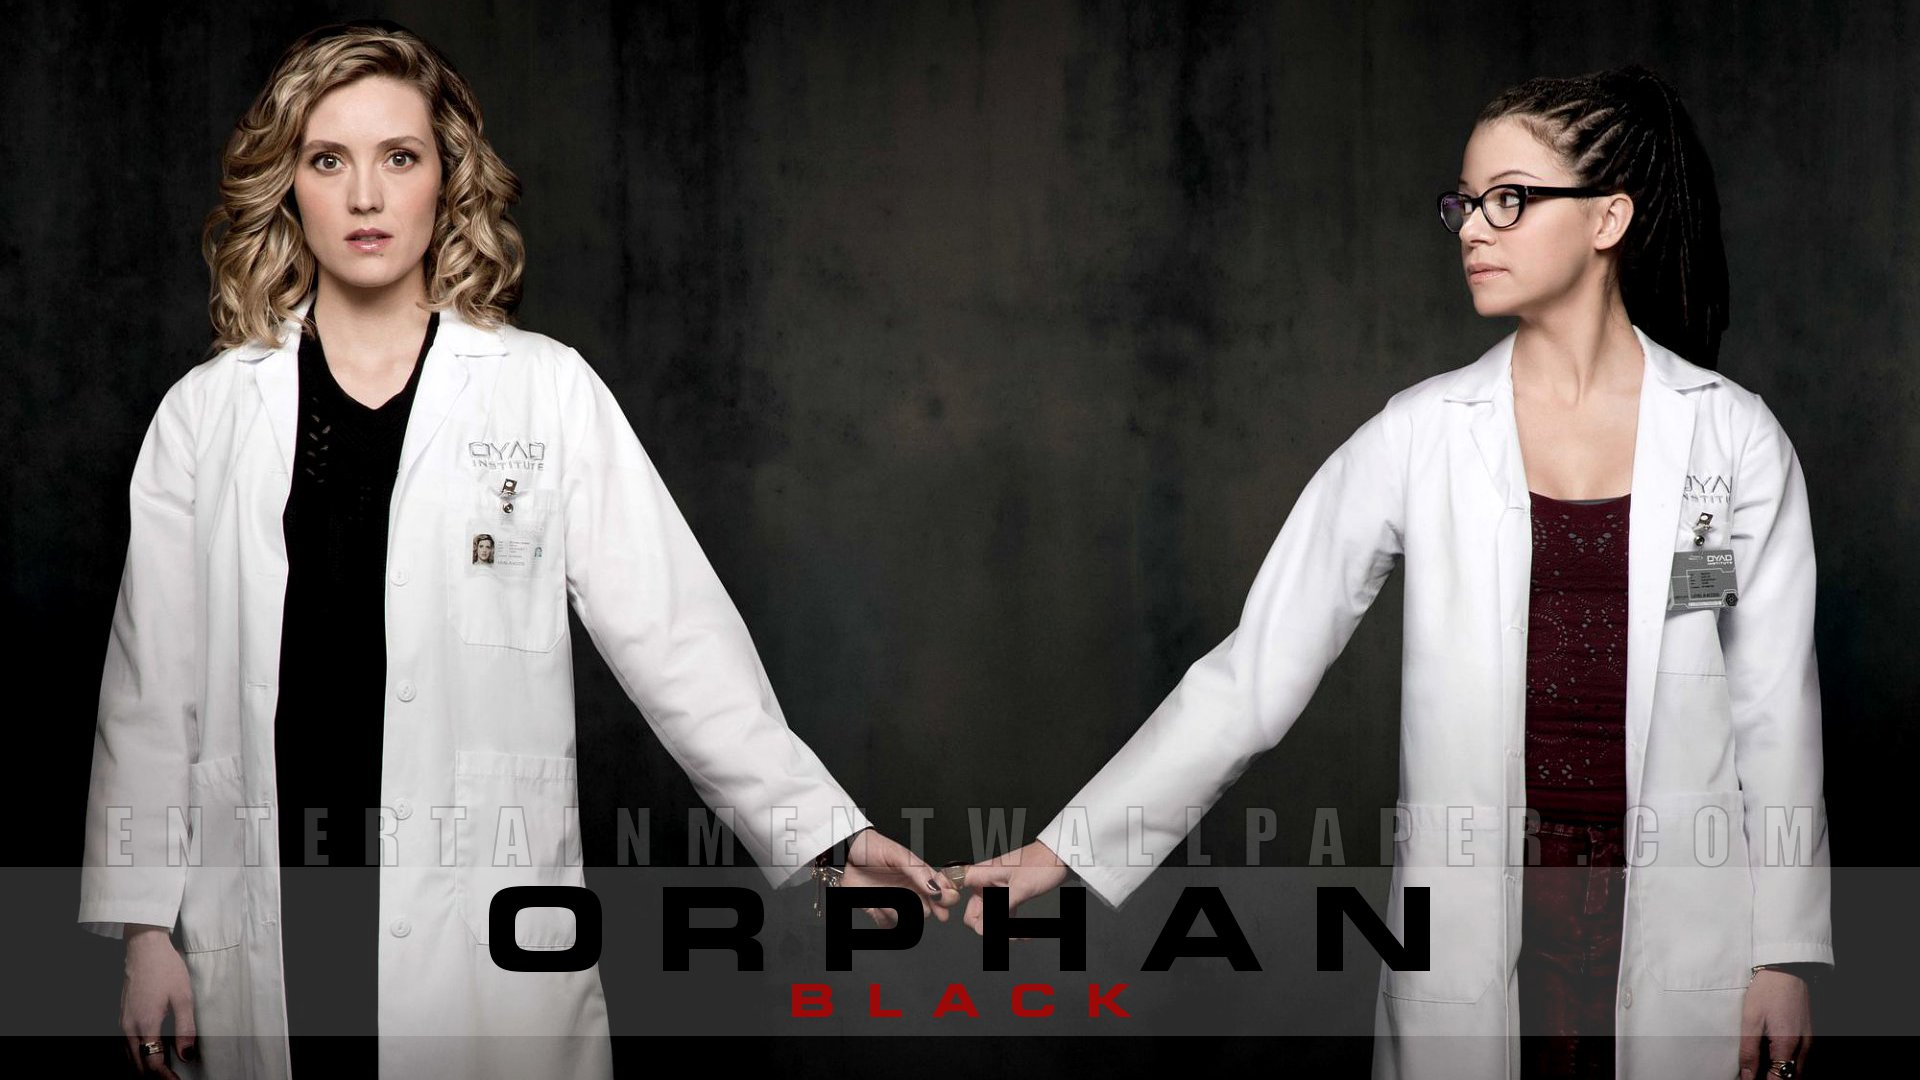 Free Download Orphan Black Wallpaper 20044224 Size 1920x1080 More